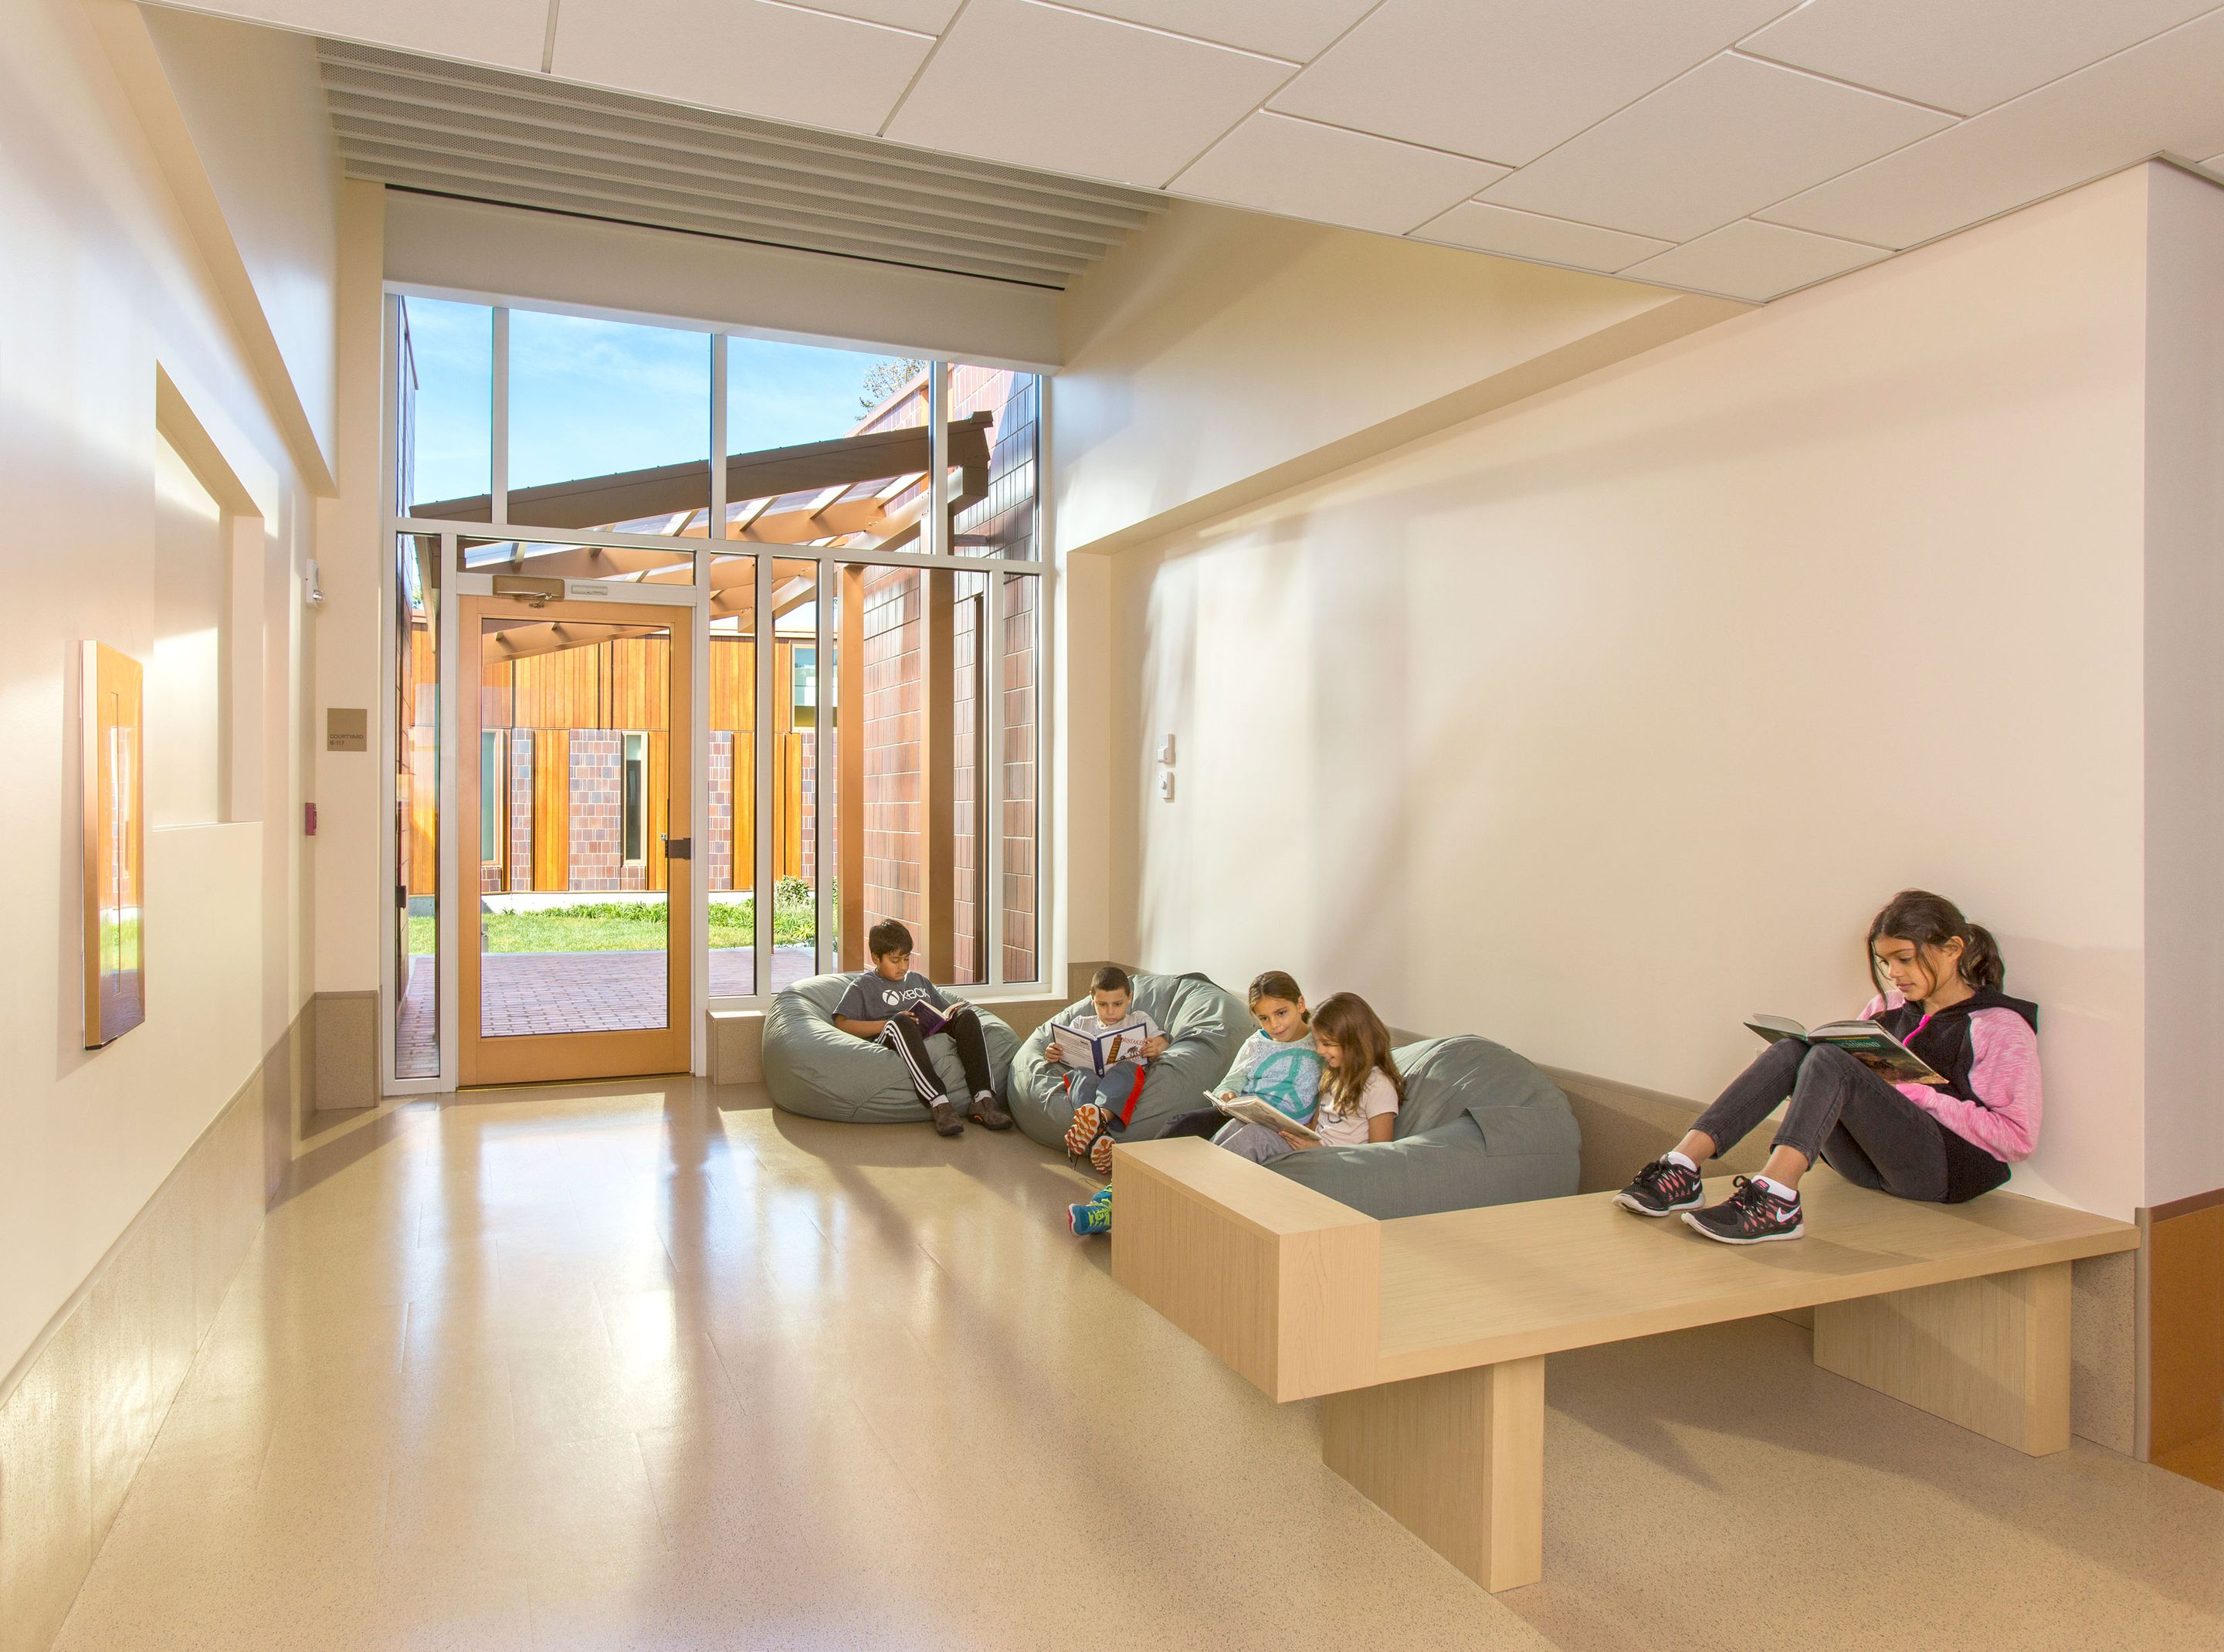 At Field Elementary School, a public school in Weston, Massachusetts, an alcove is used as a breakout space for small group collaboration.